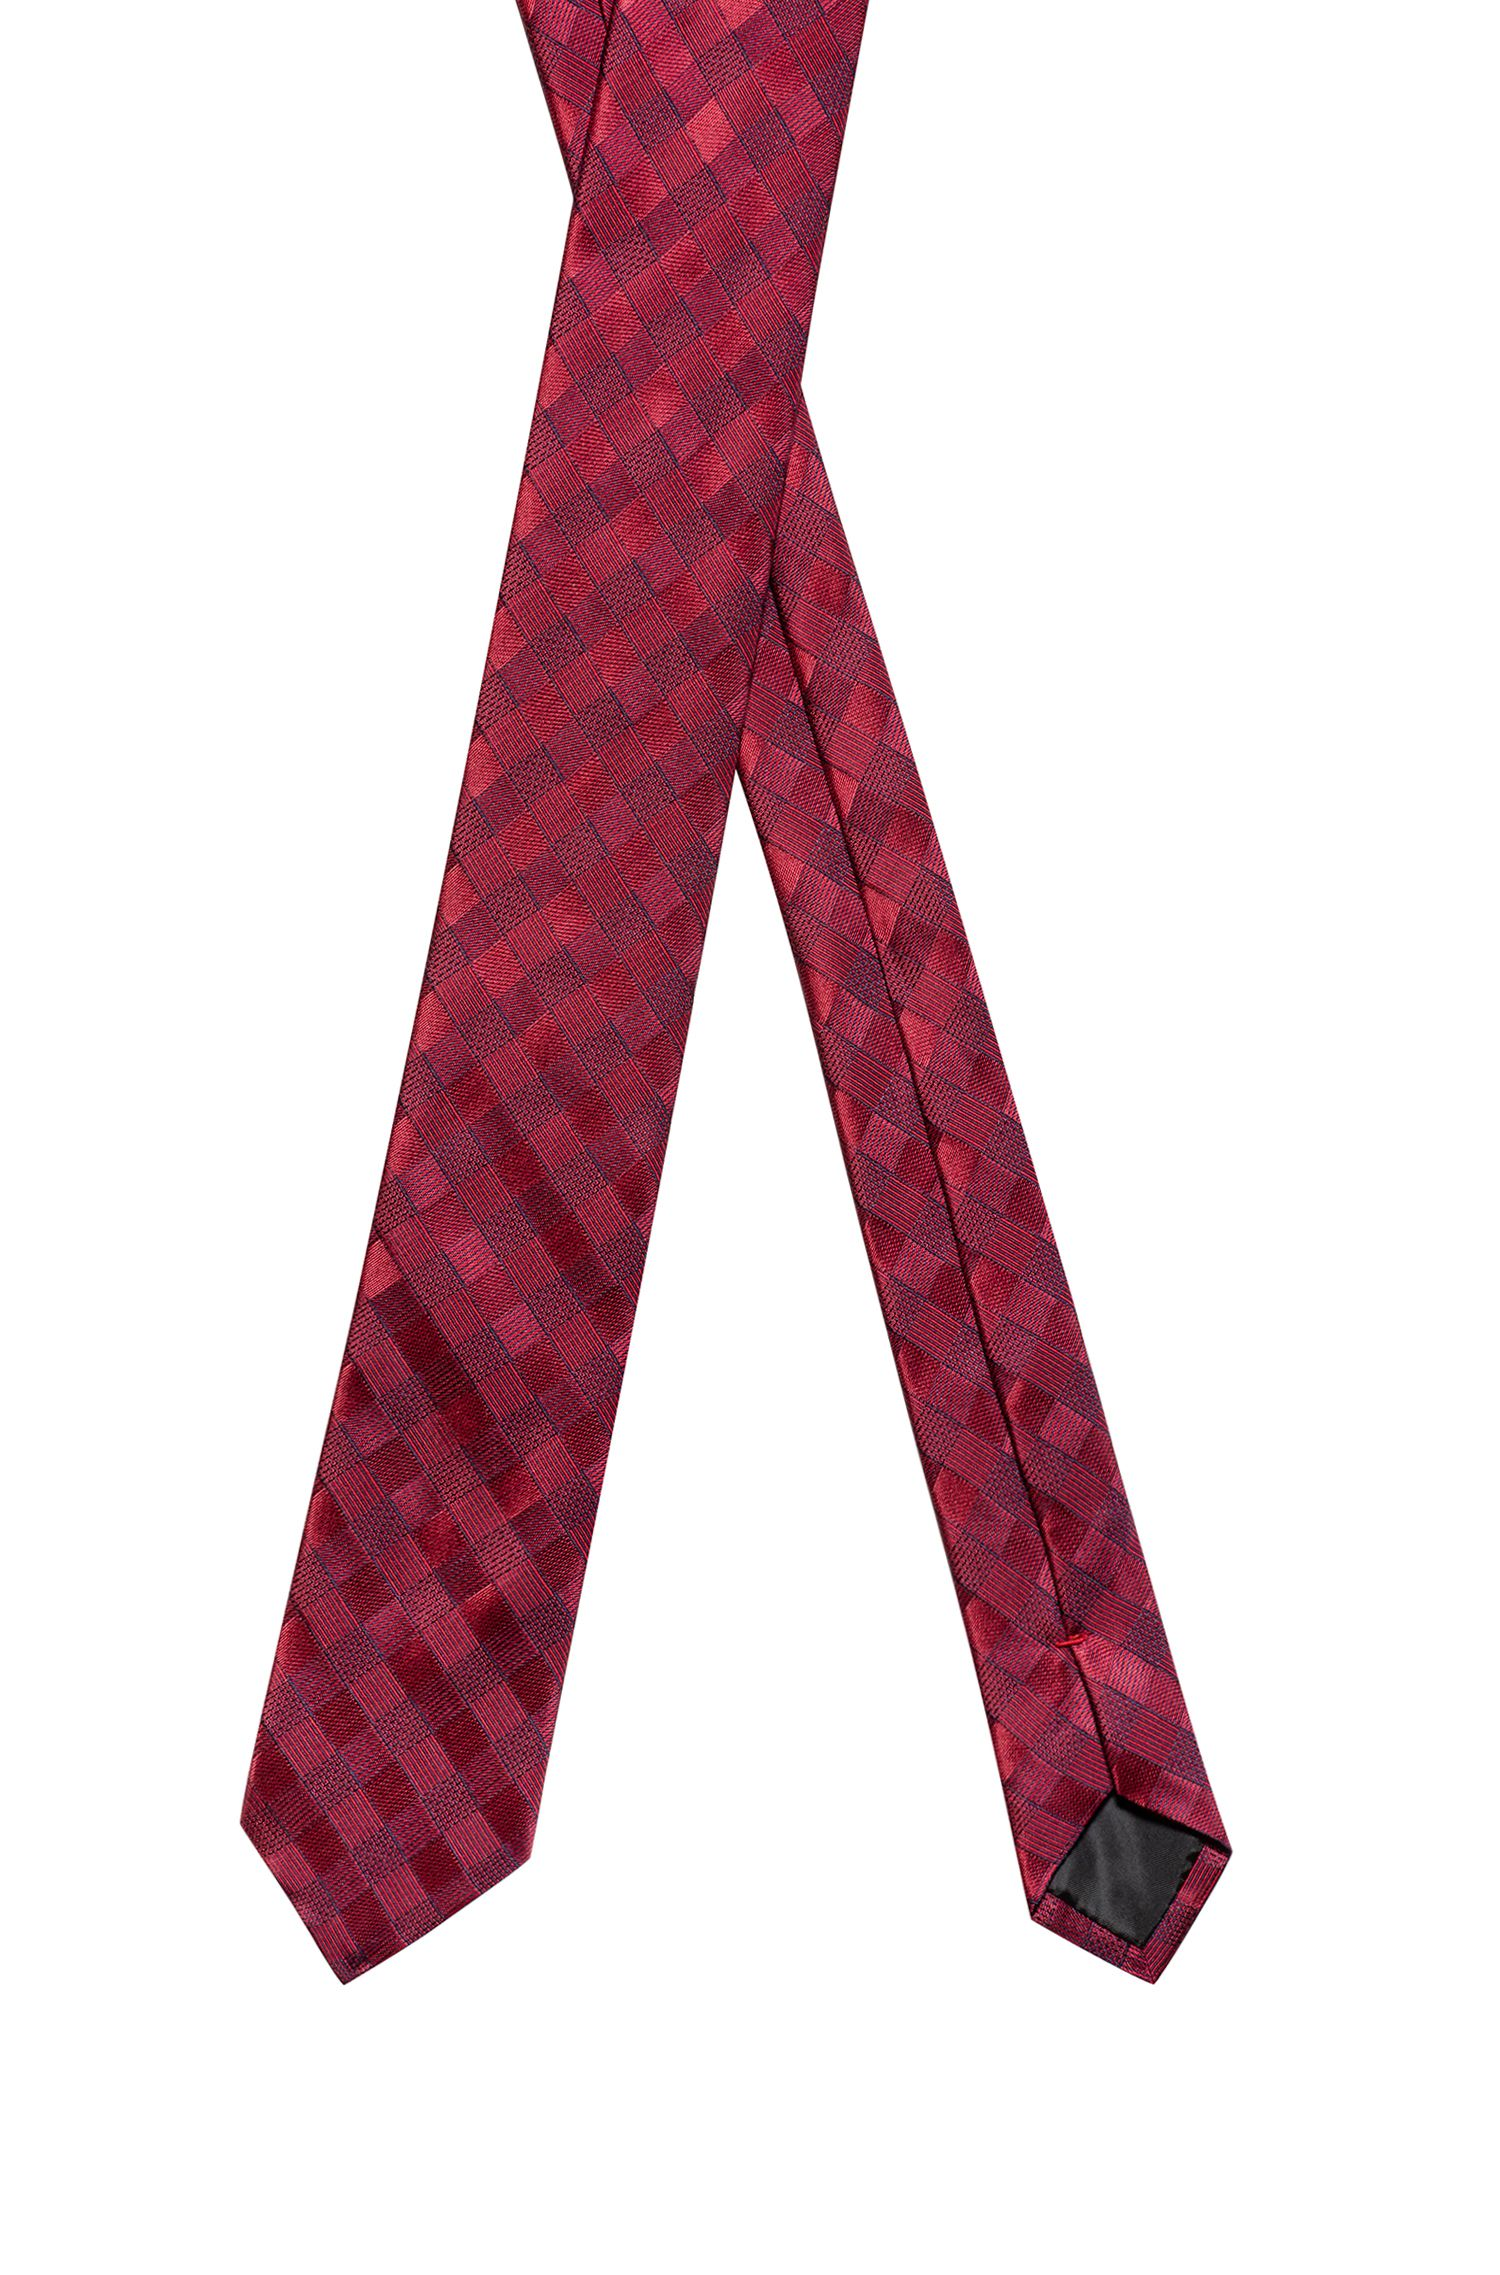 Checked tie in silk jacquard, Patterned